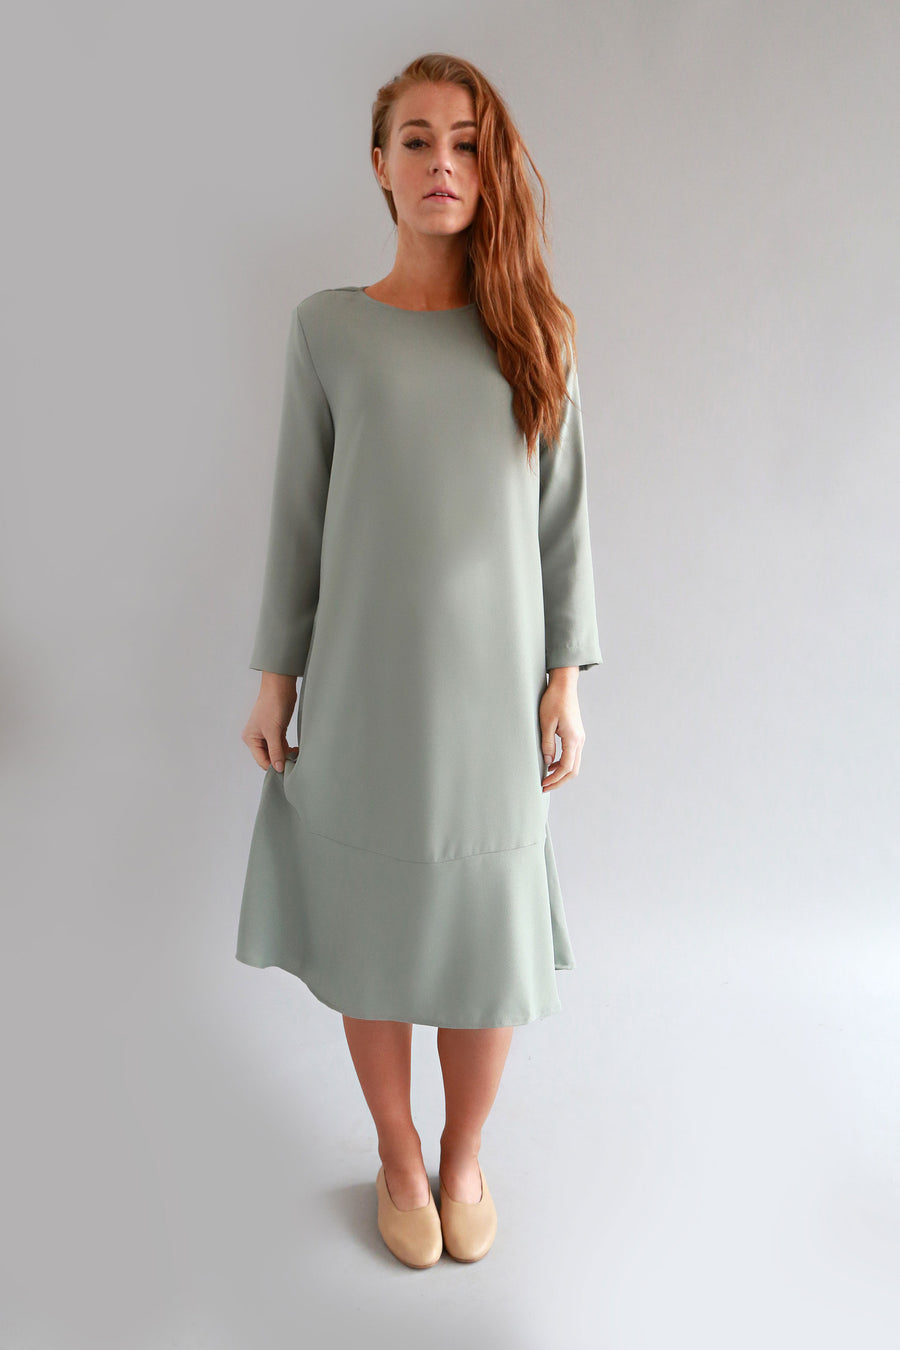 SEA FOAM MILKA DRESS - SOLIKA